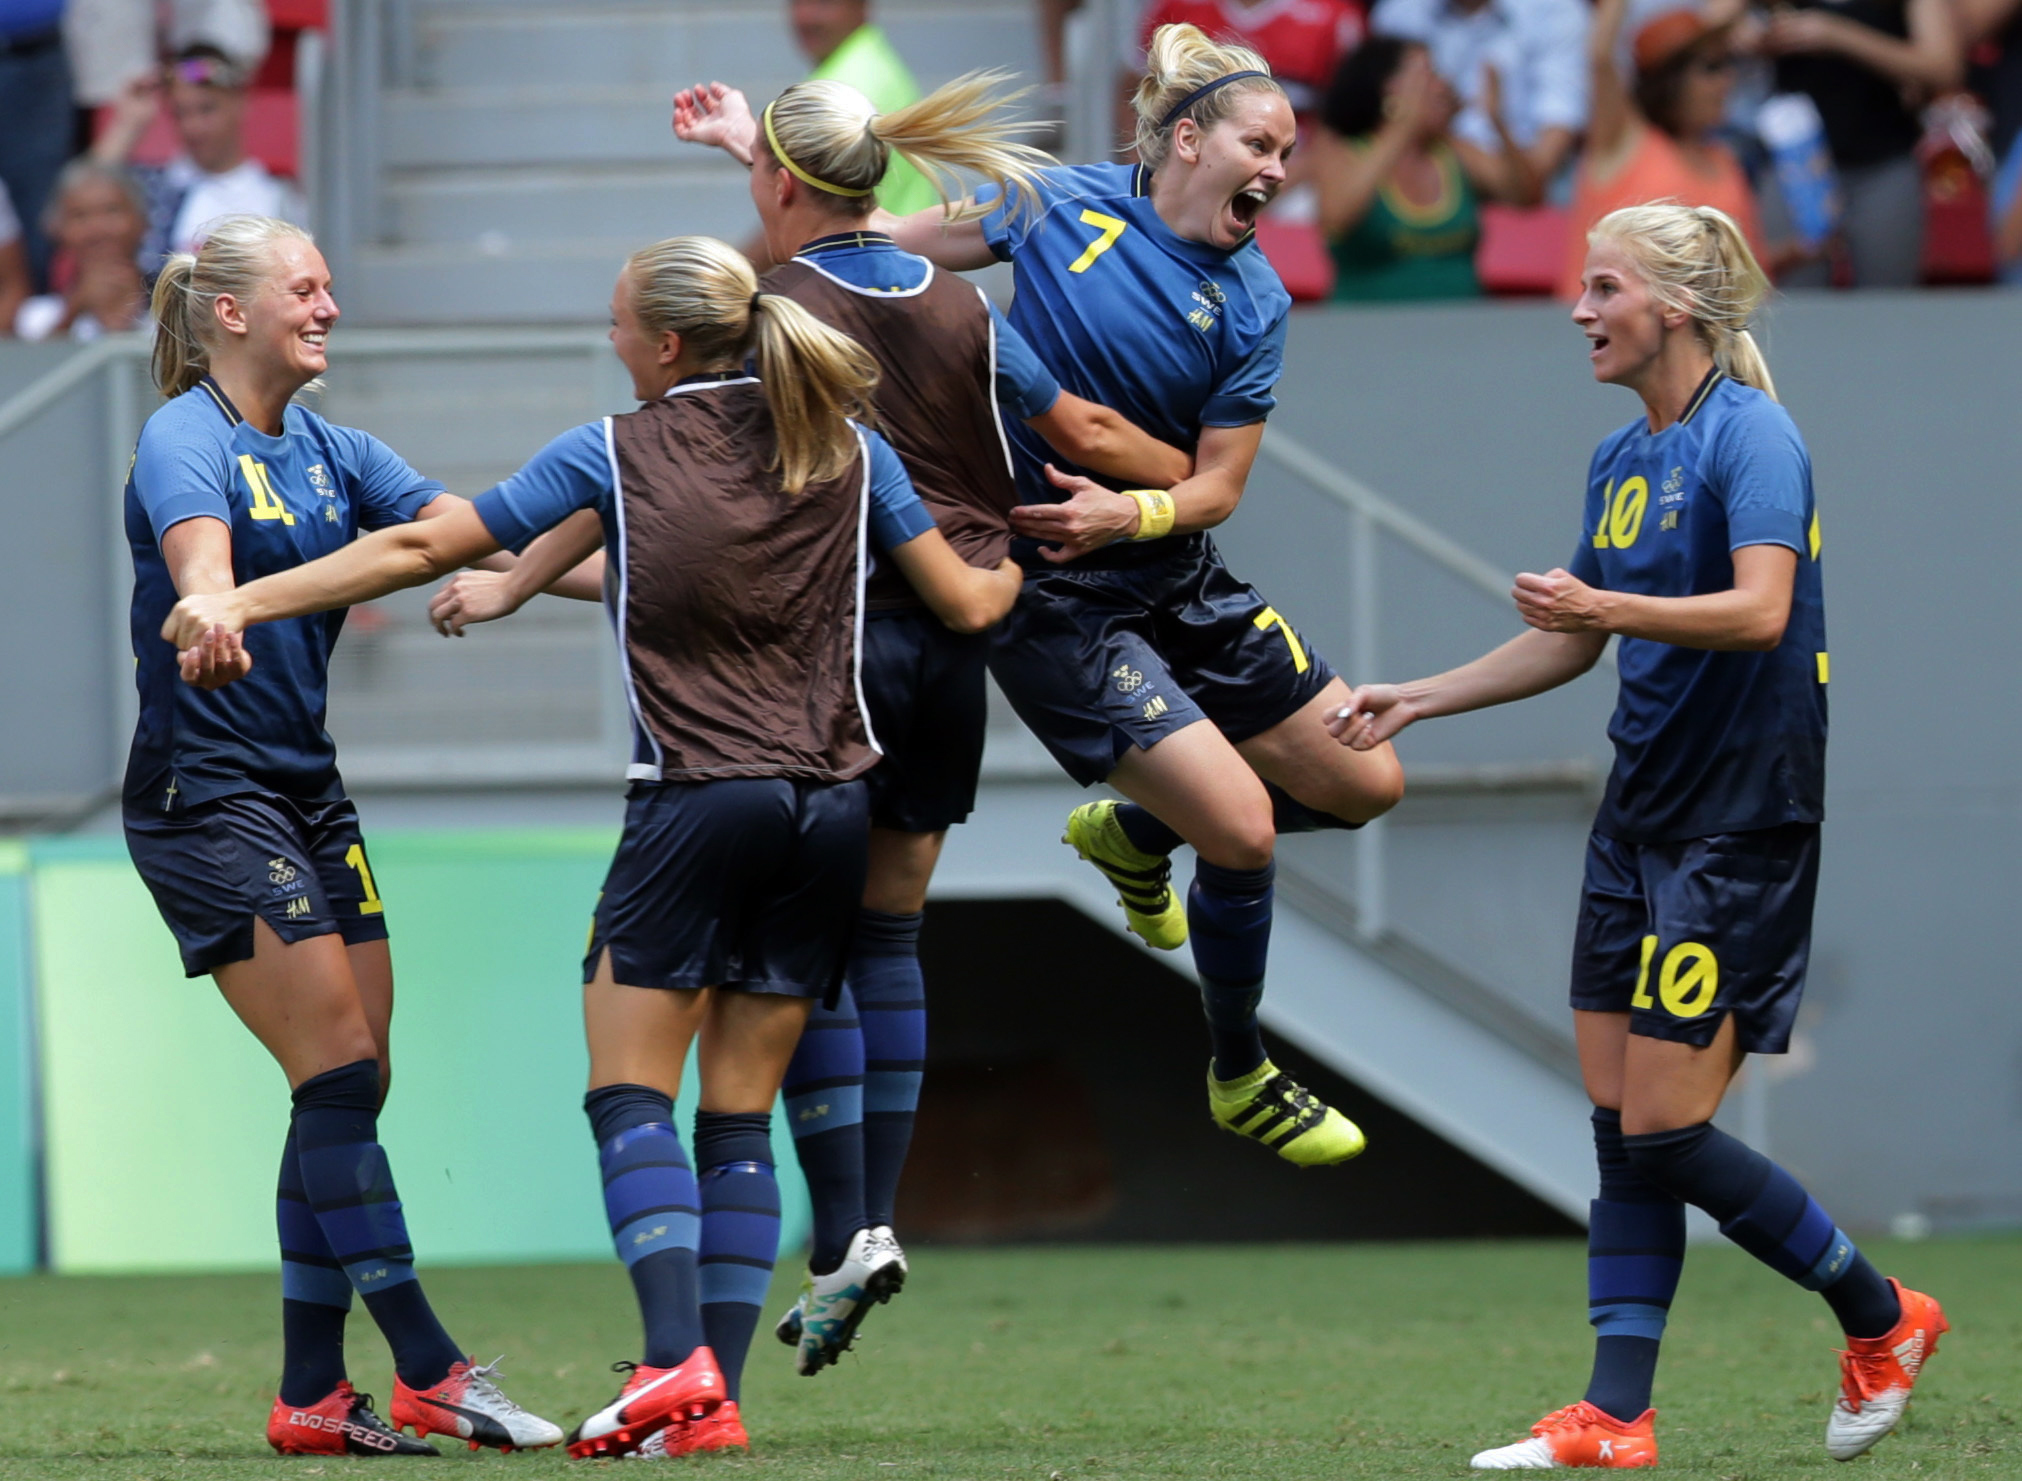 Players from Sweden celebrate after Stina Blackstenius, left, scored her team's first goal during a quarter-final match of the women's Olympic soccer tournament between the United States and Sweden in Brasilia Friday, Aug. 12, 2016. (AP Photo/Eraldo Peres